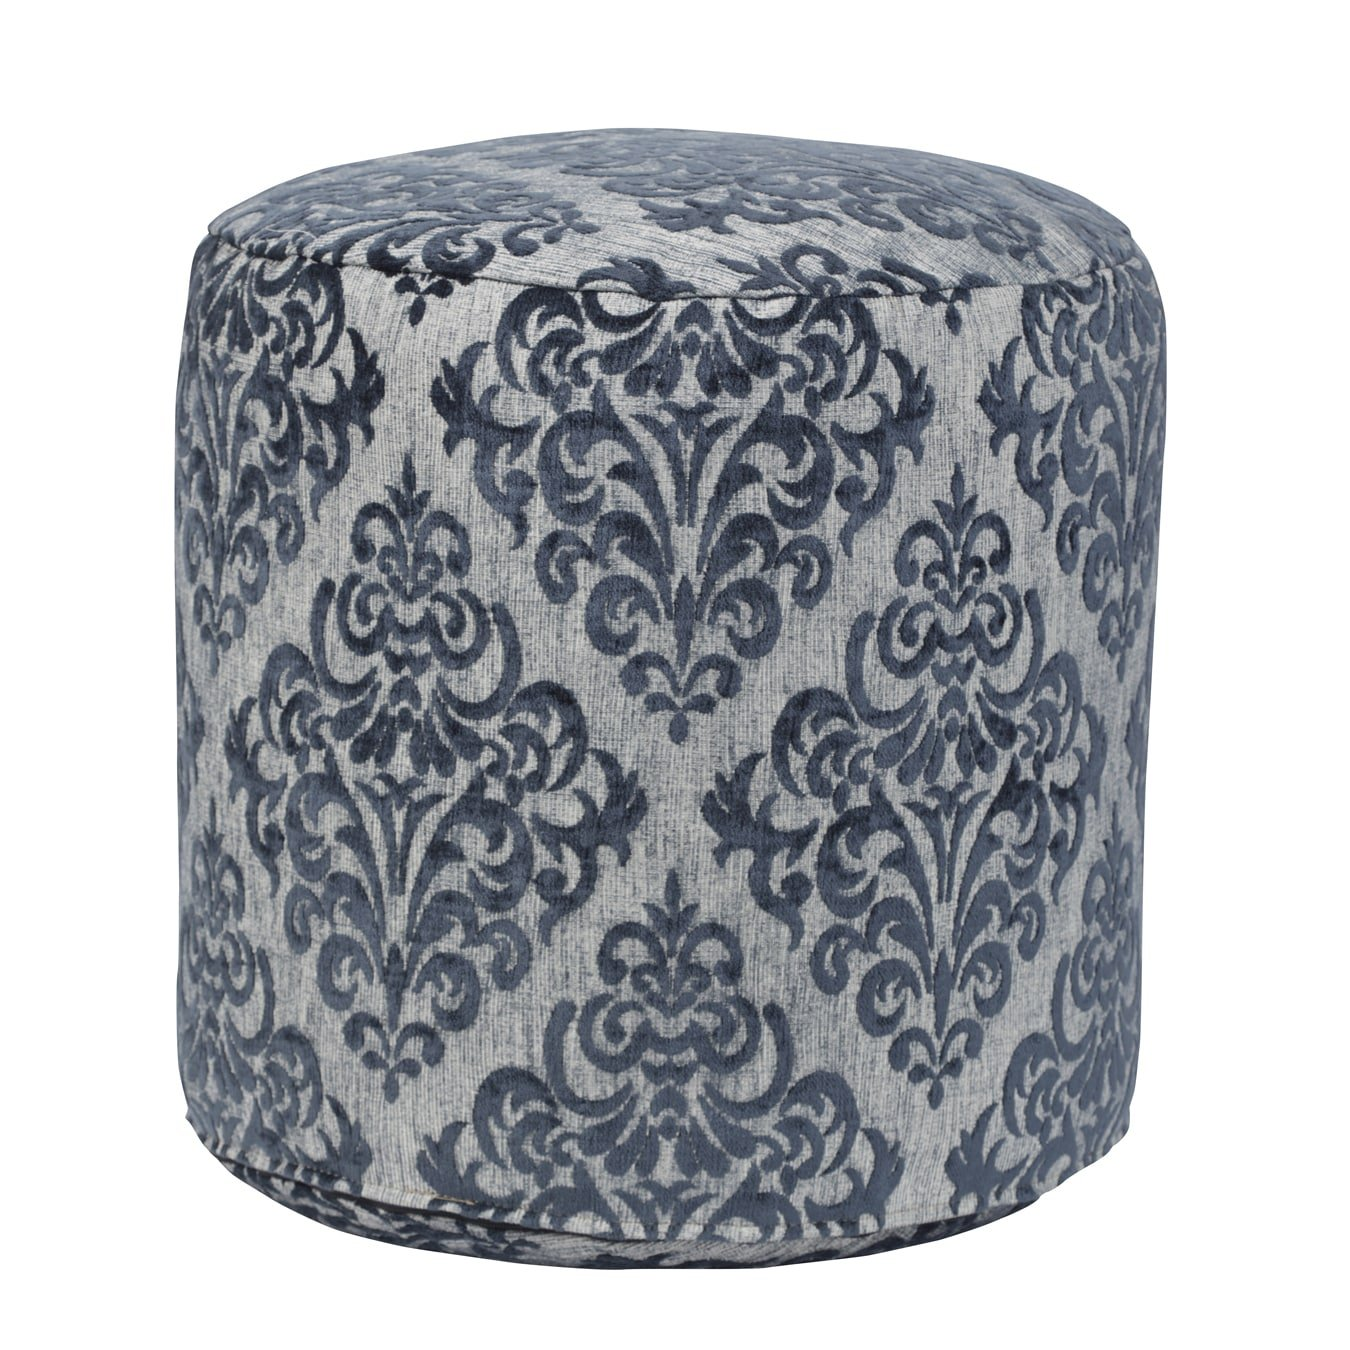 American Furniture Classics Yamerican Furniture Classicsorkshire Tapestry Pouf Ottoman, Turquoise